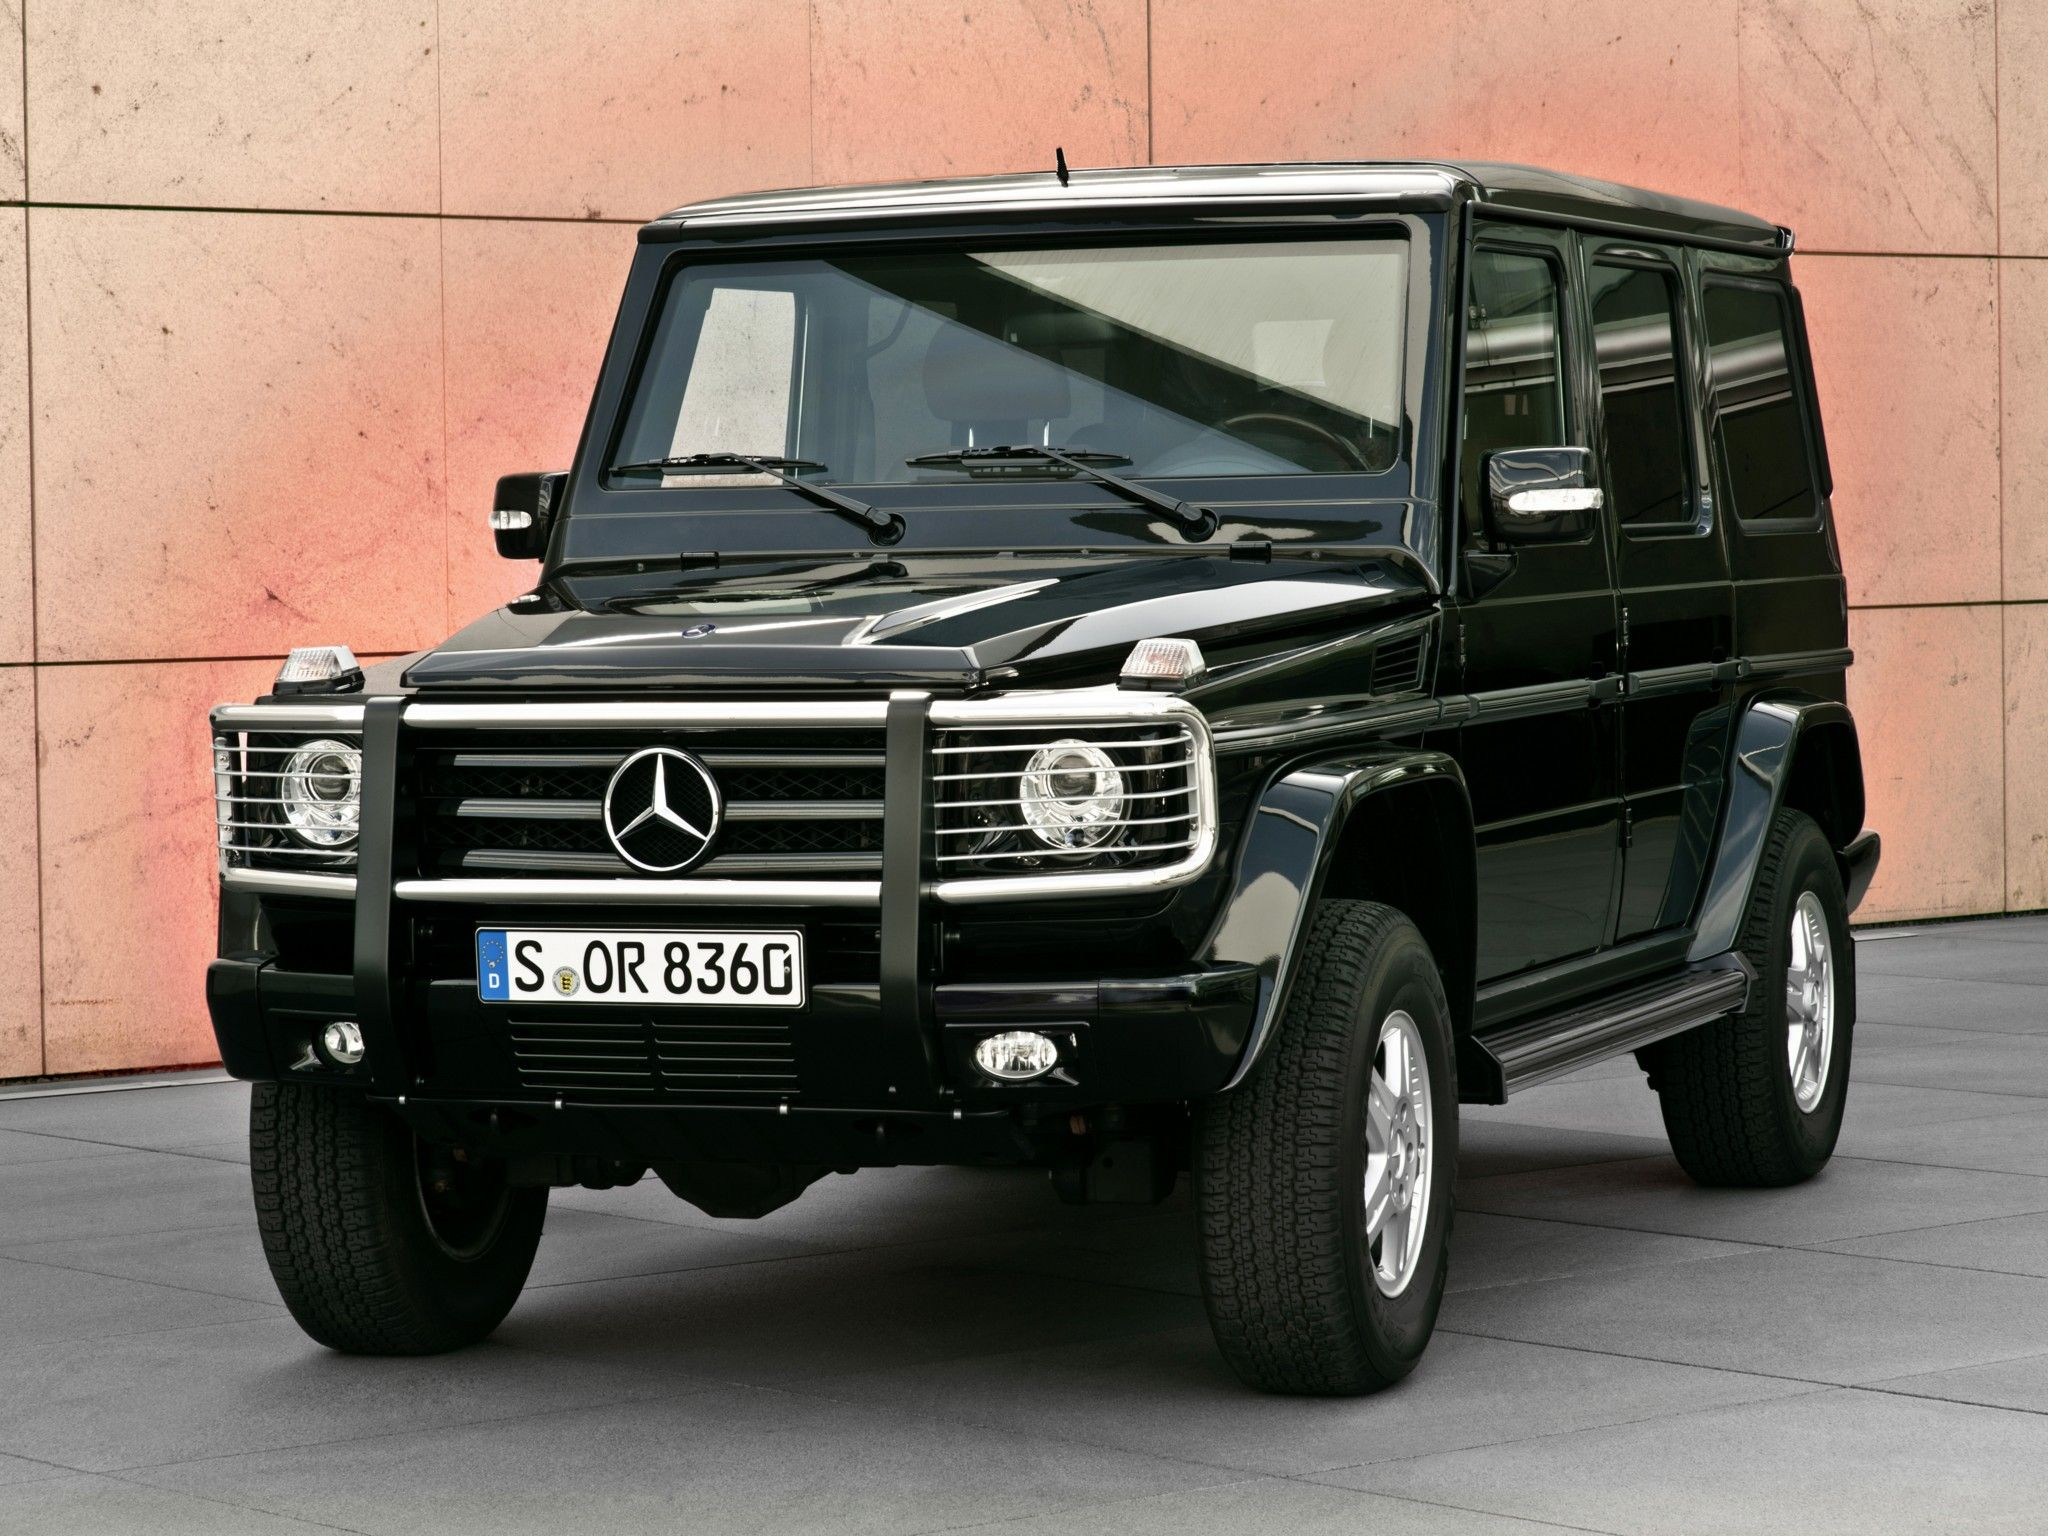 2009 armored mercedes benz g 500 guard w463 suv 4x4 g for Mercedes benz g class 4x4